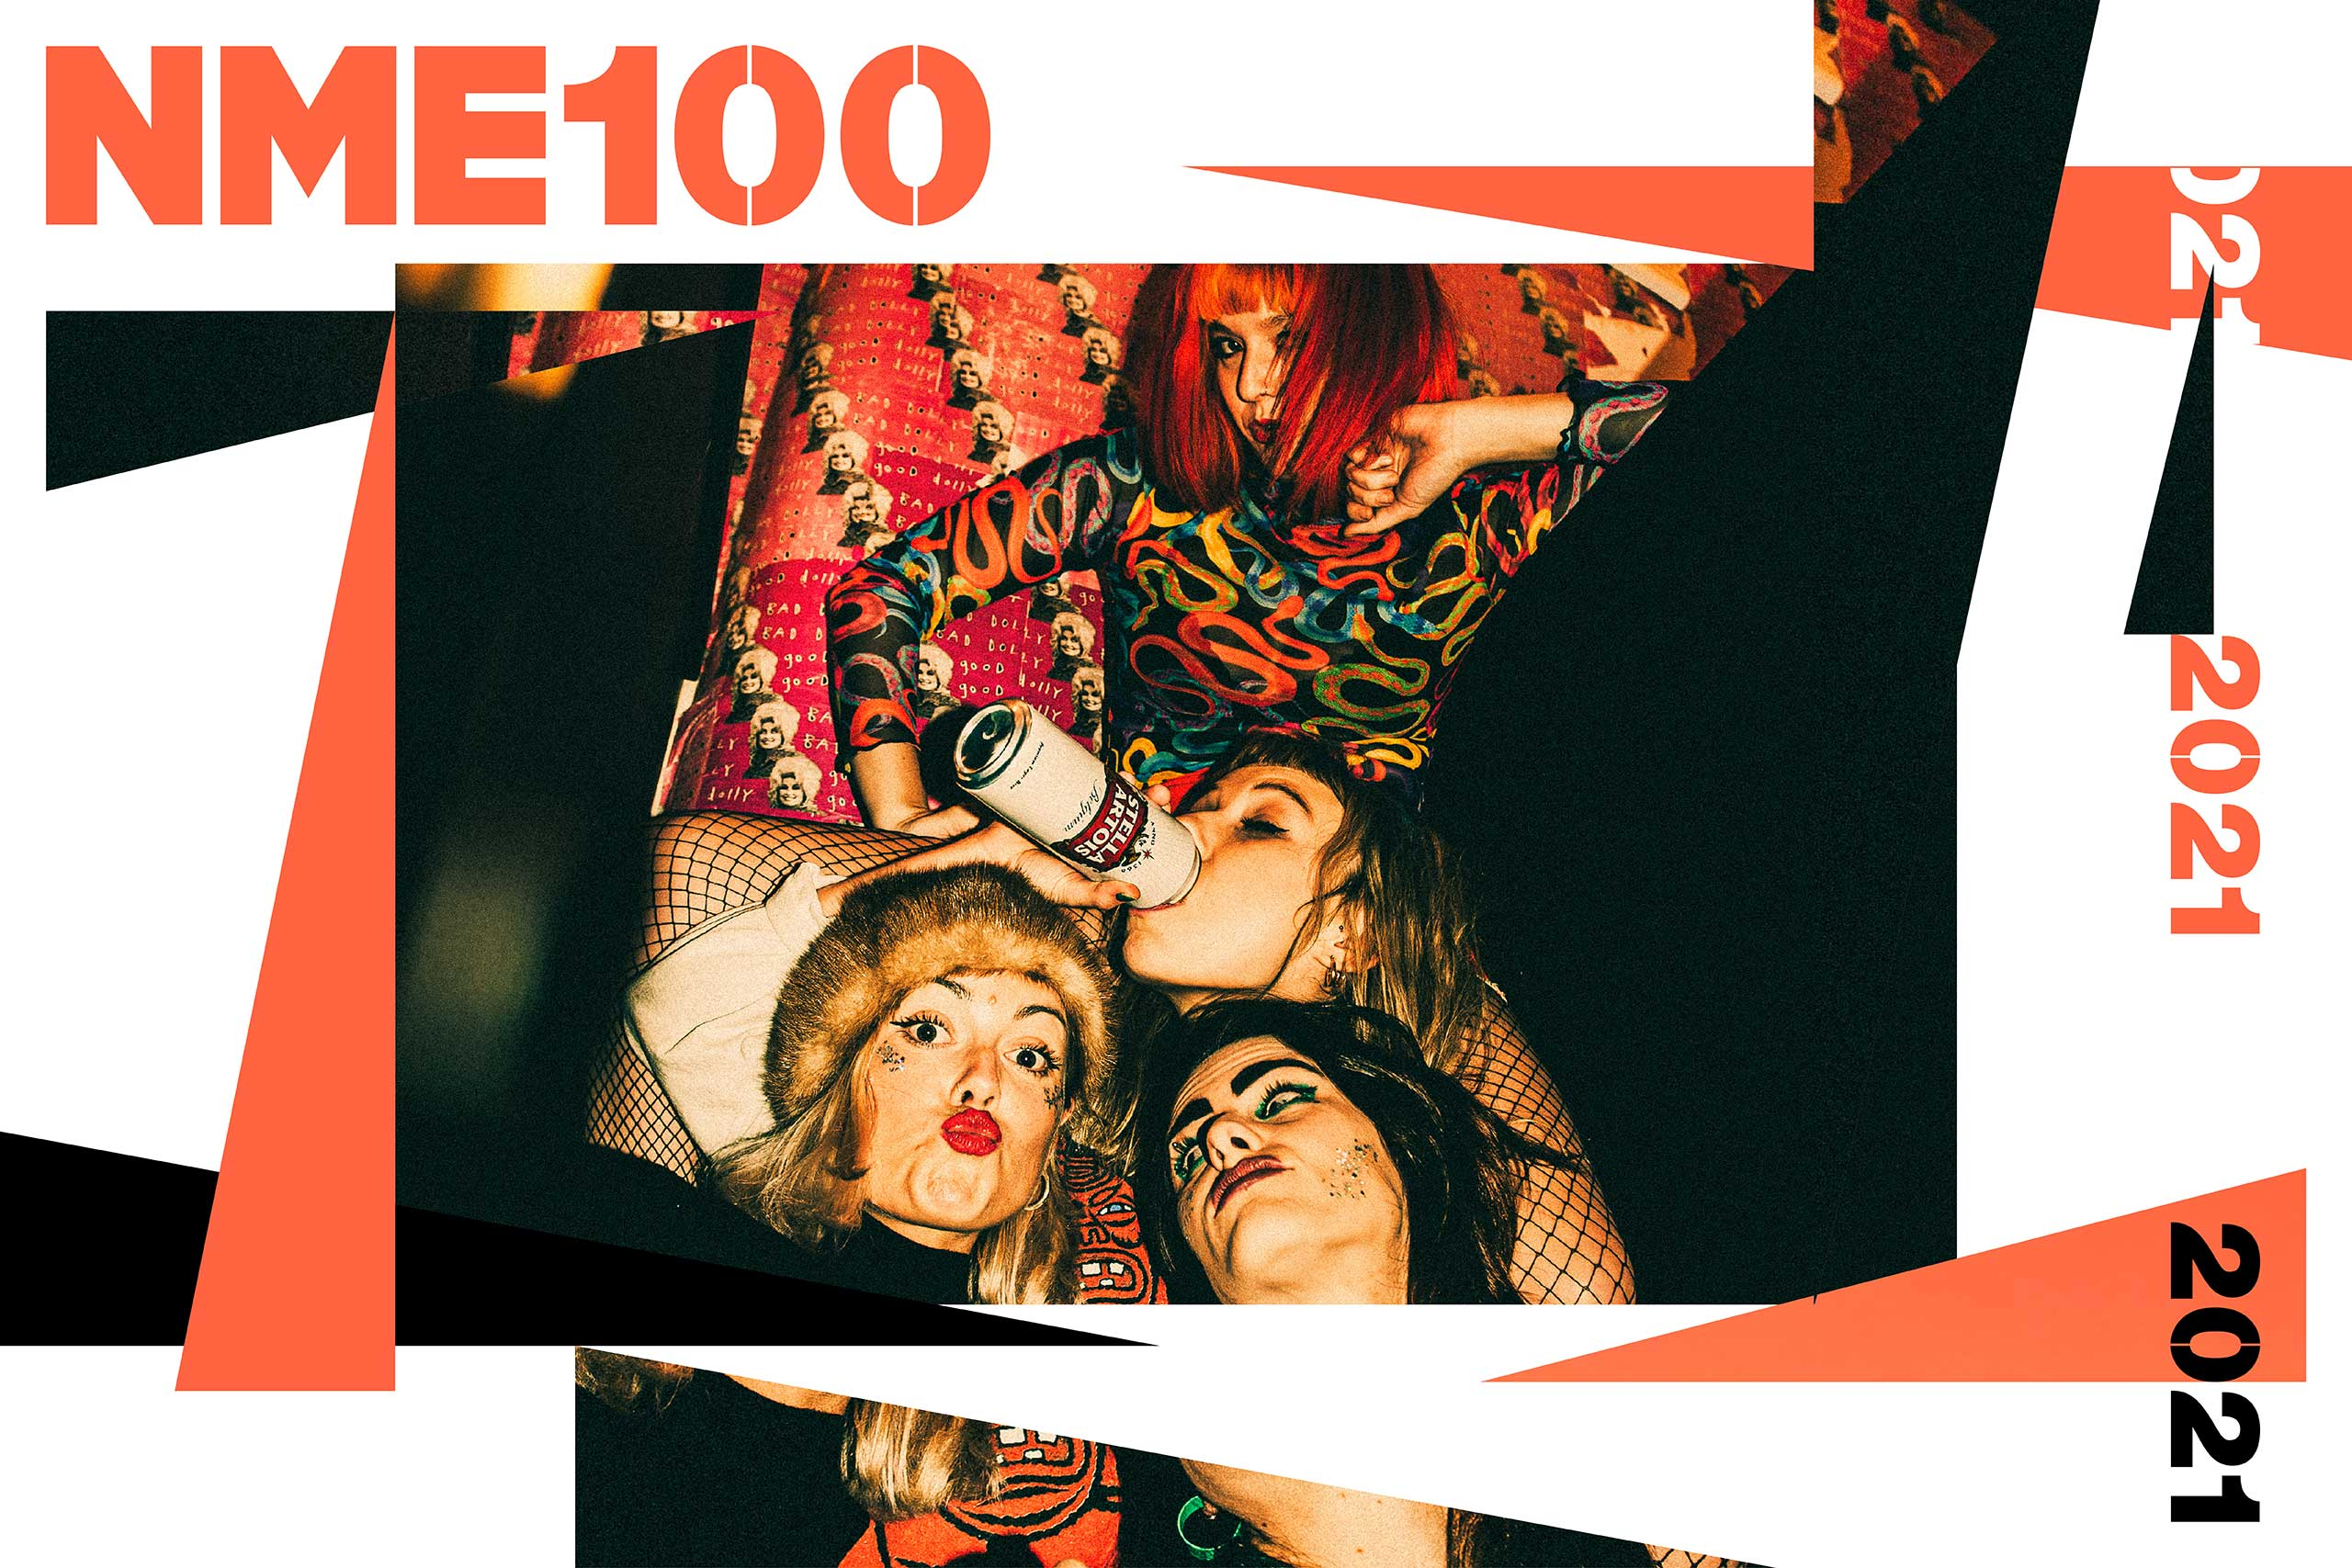 NME 100 loose articles